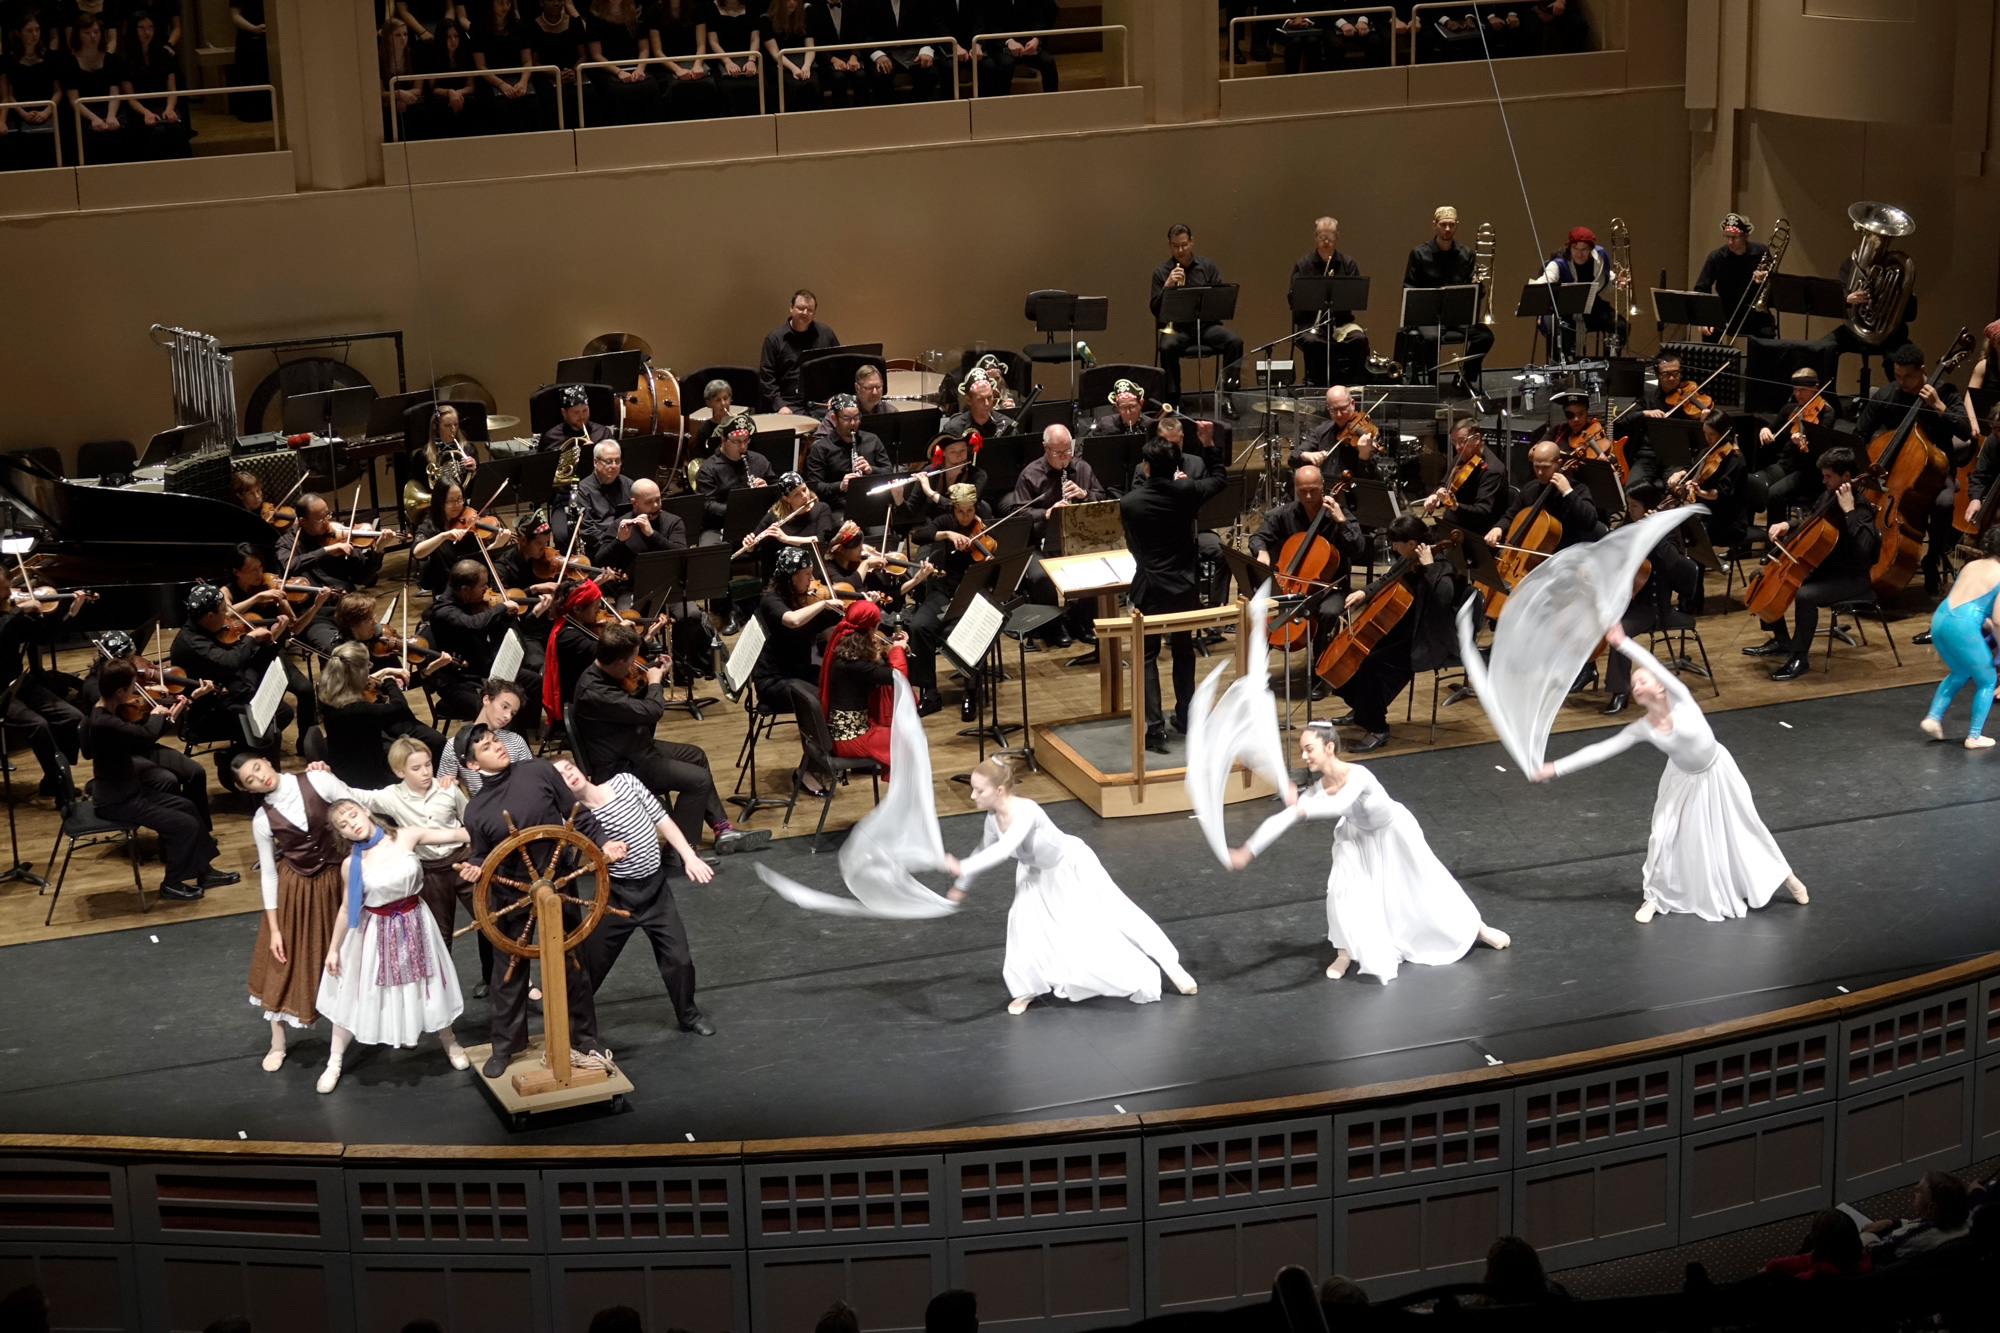 Dancers make waves in front of the orchestra